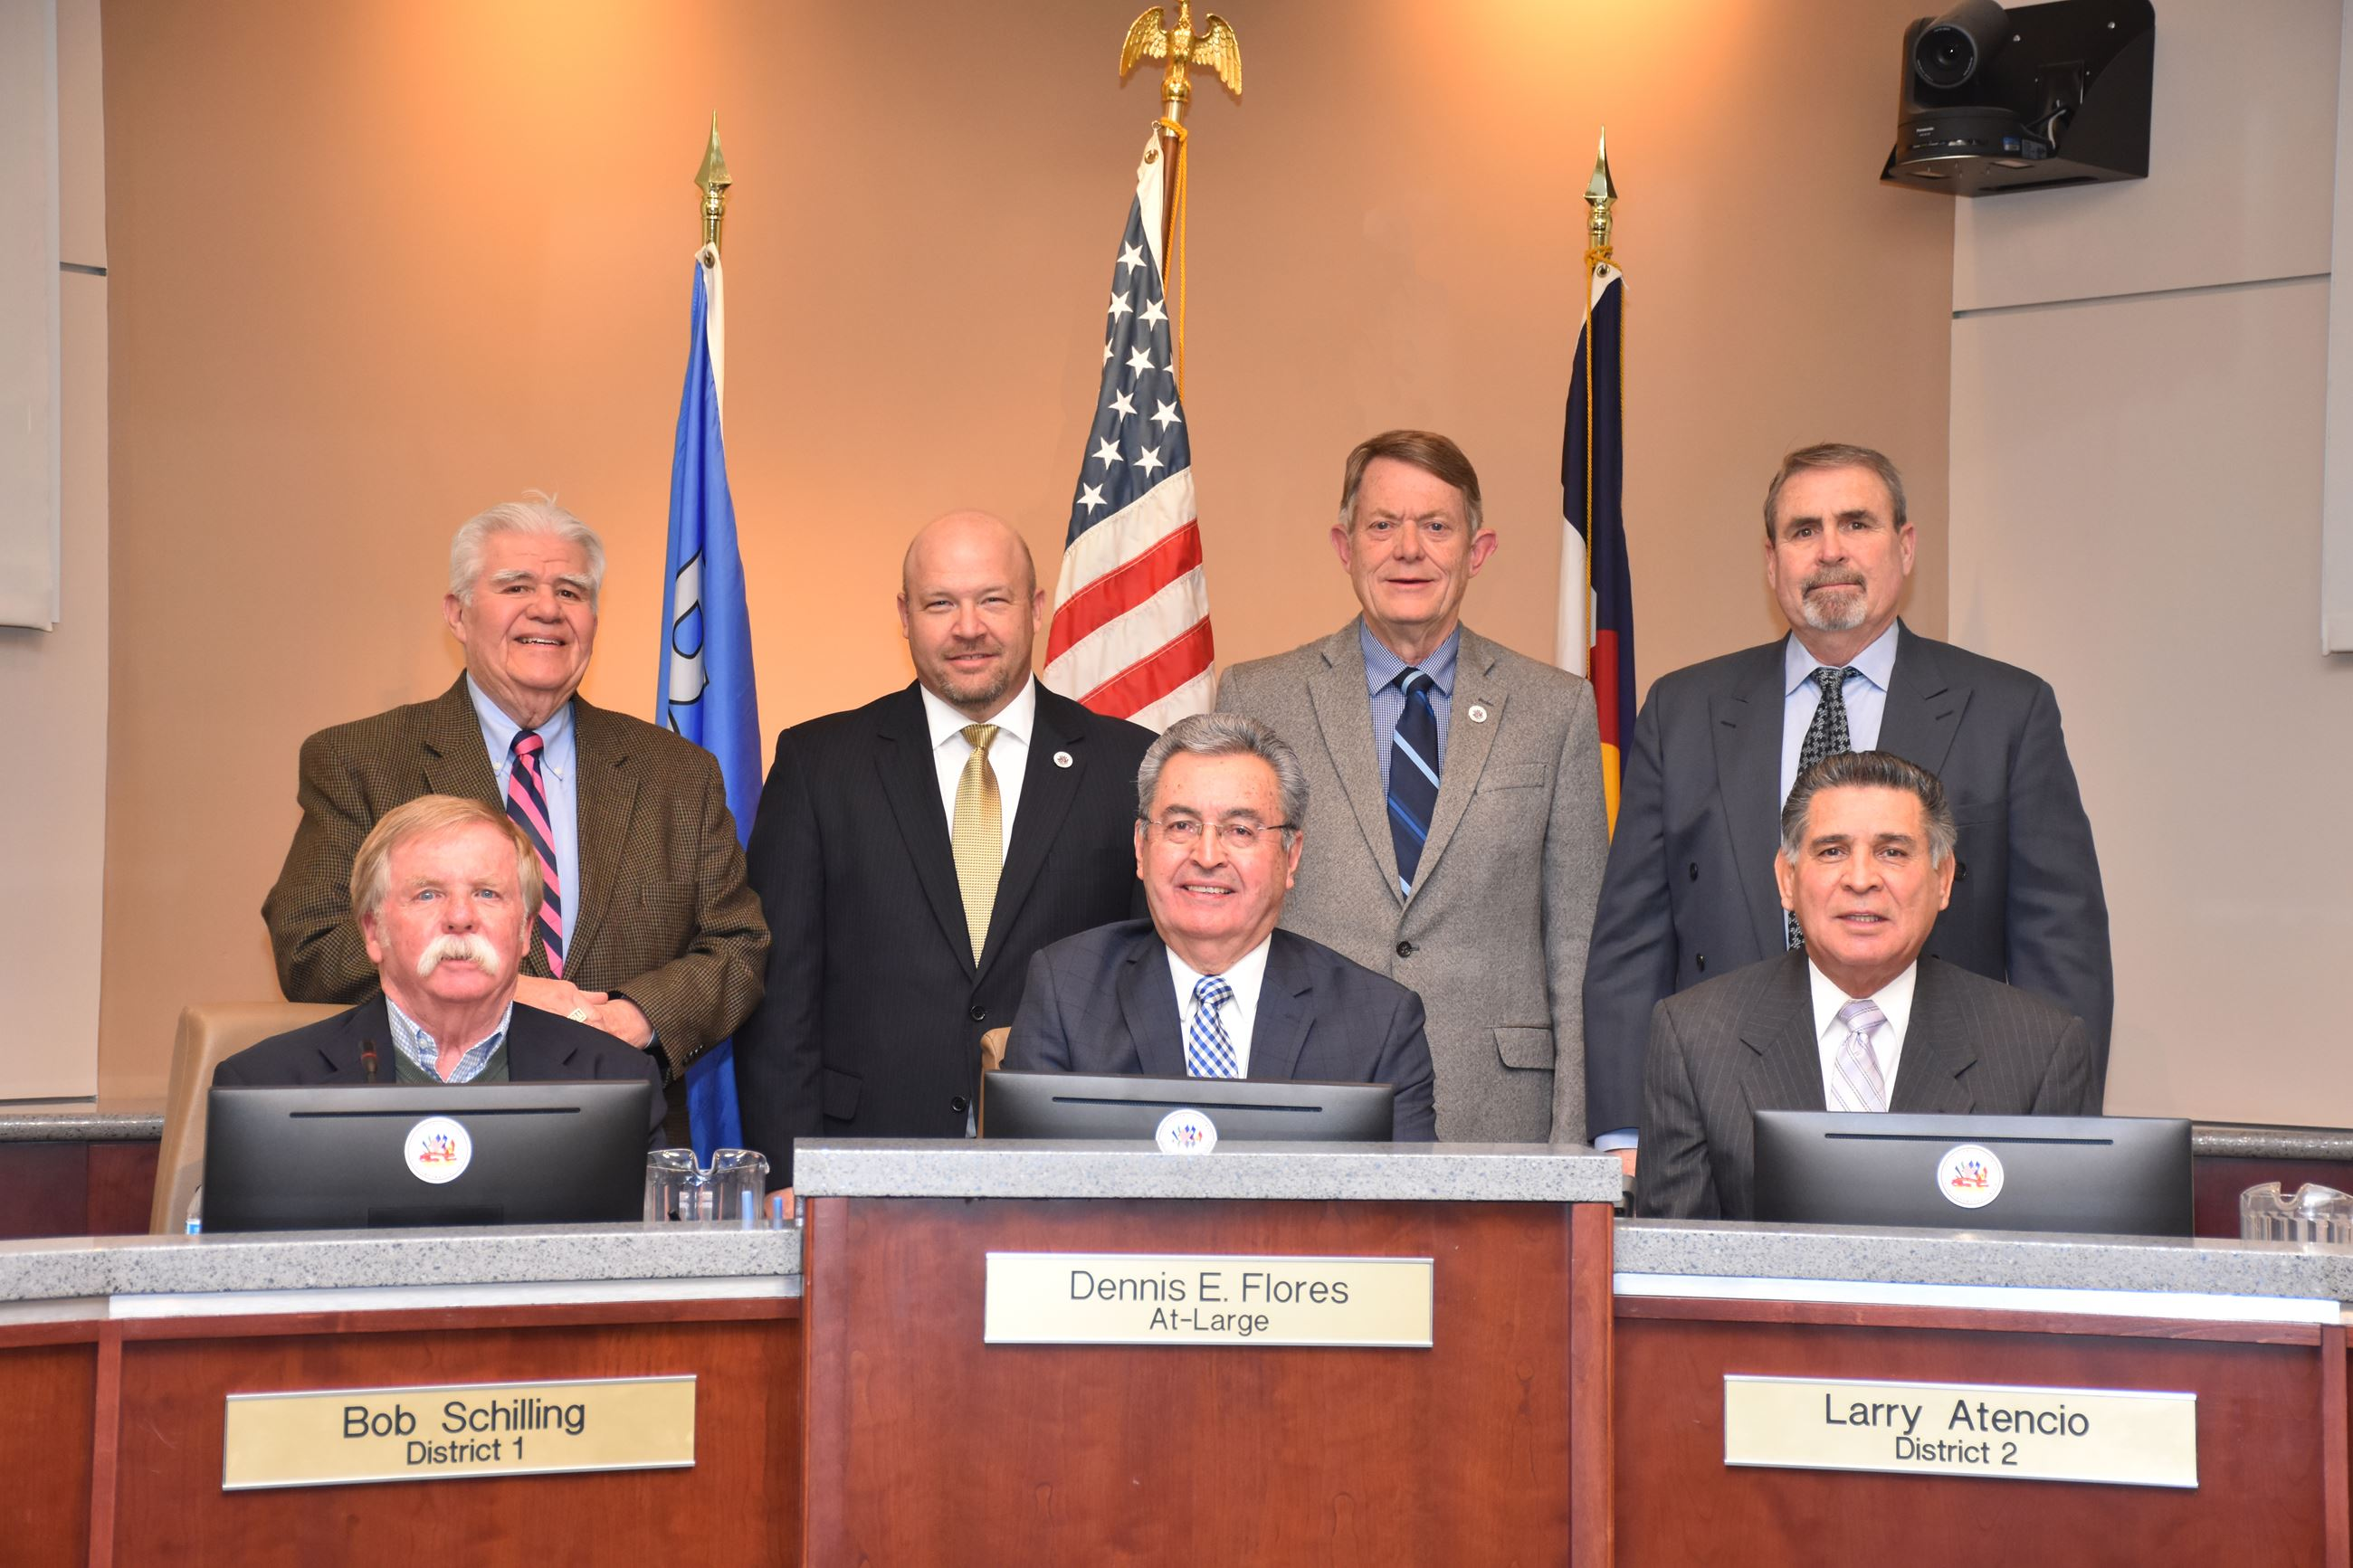 Image of City Council Members